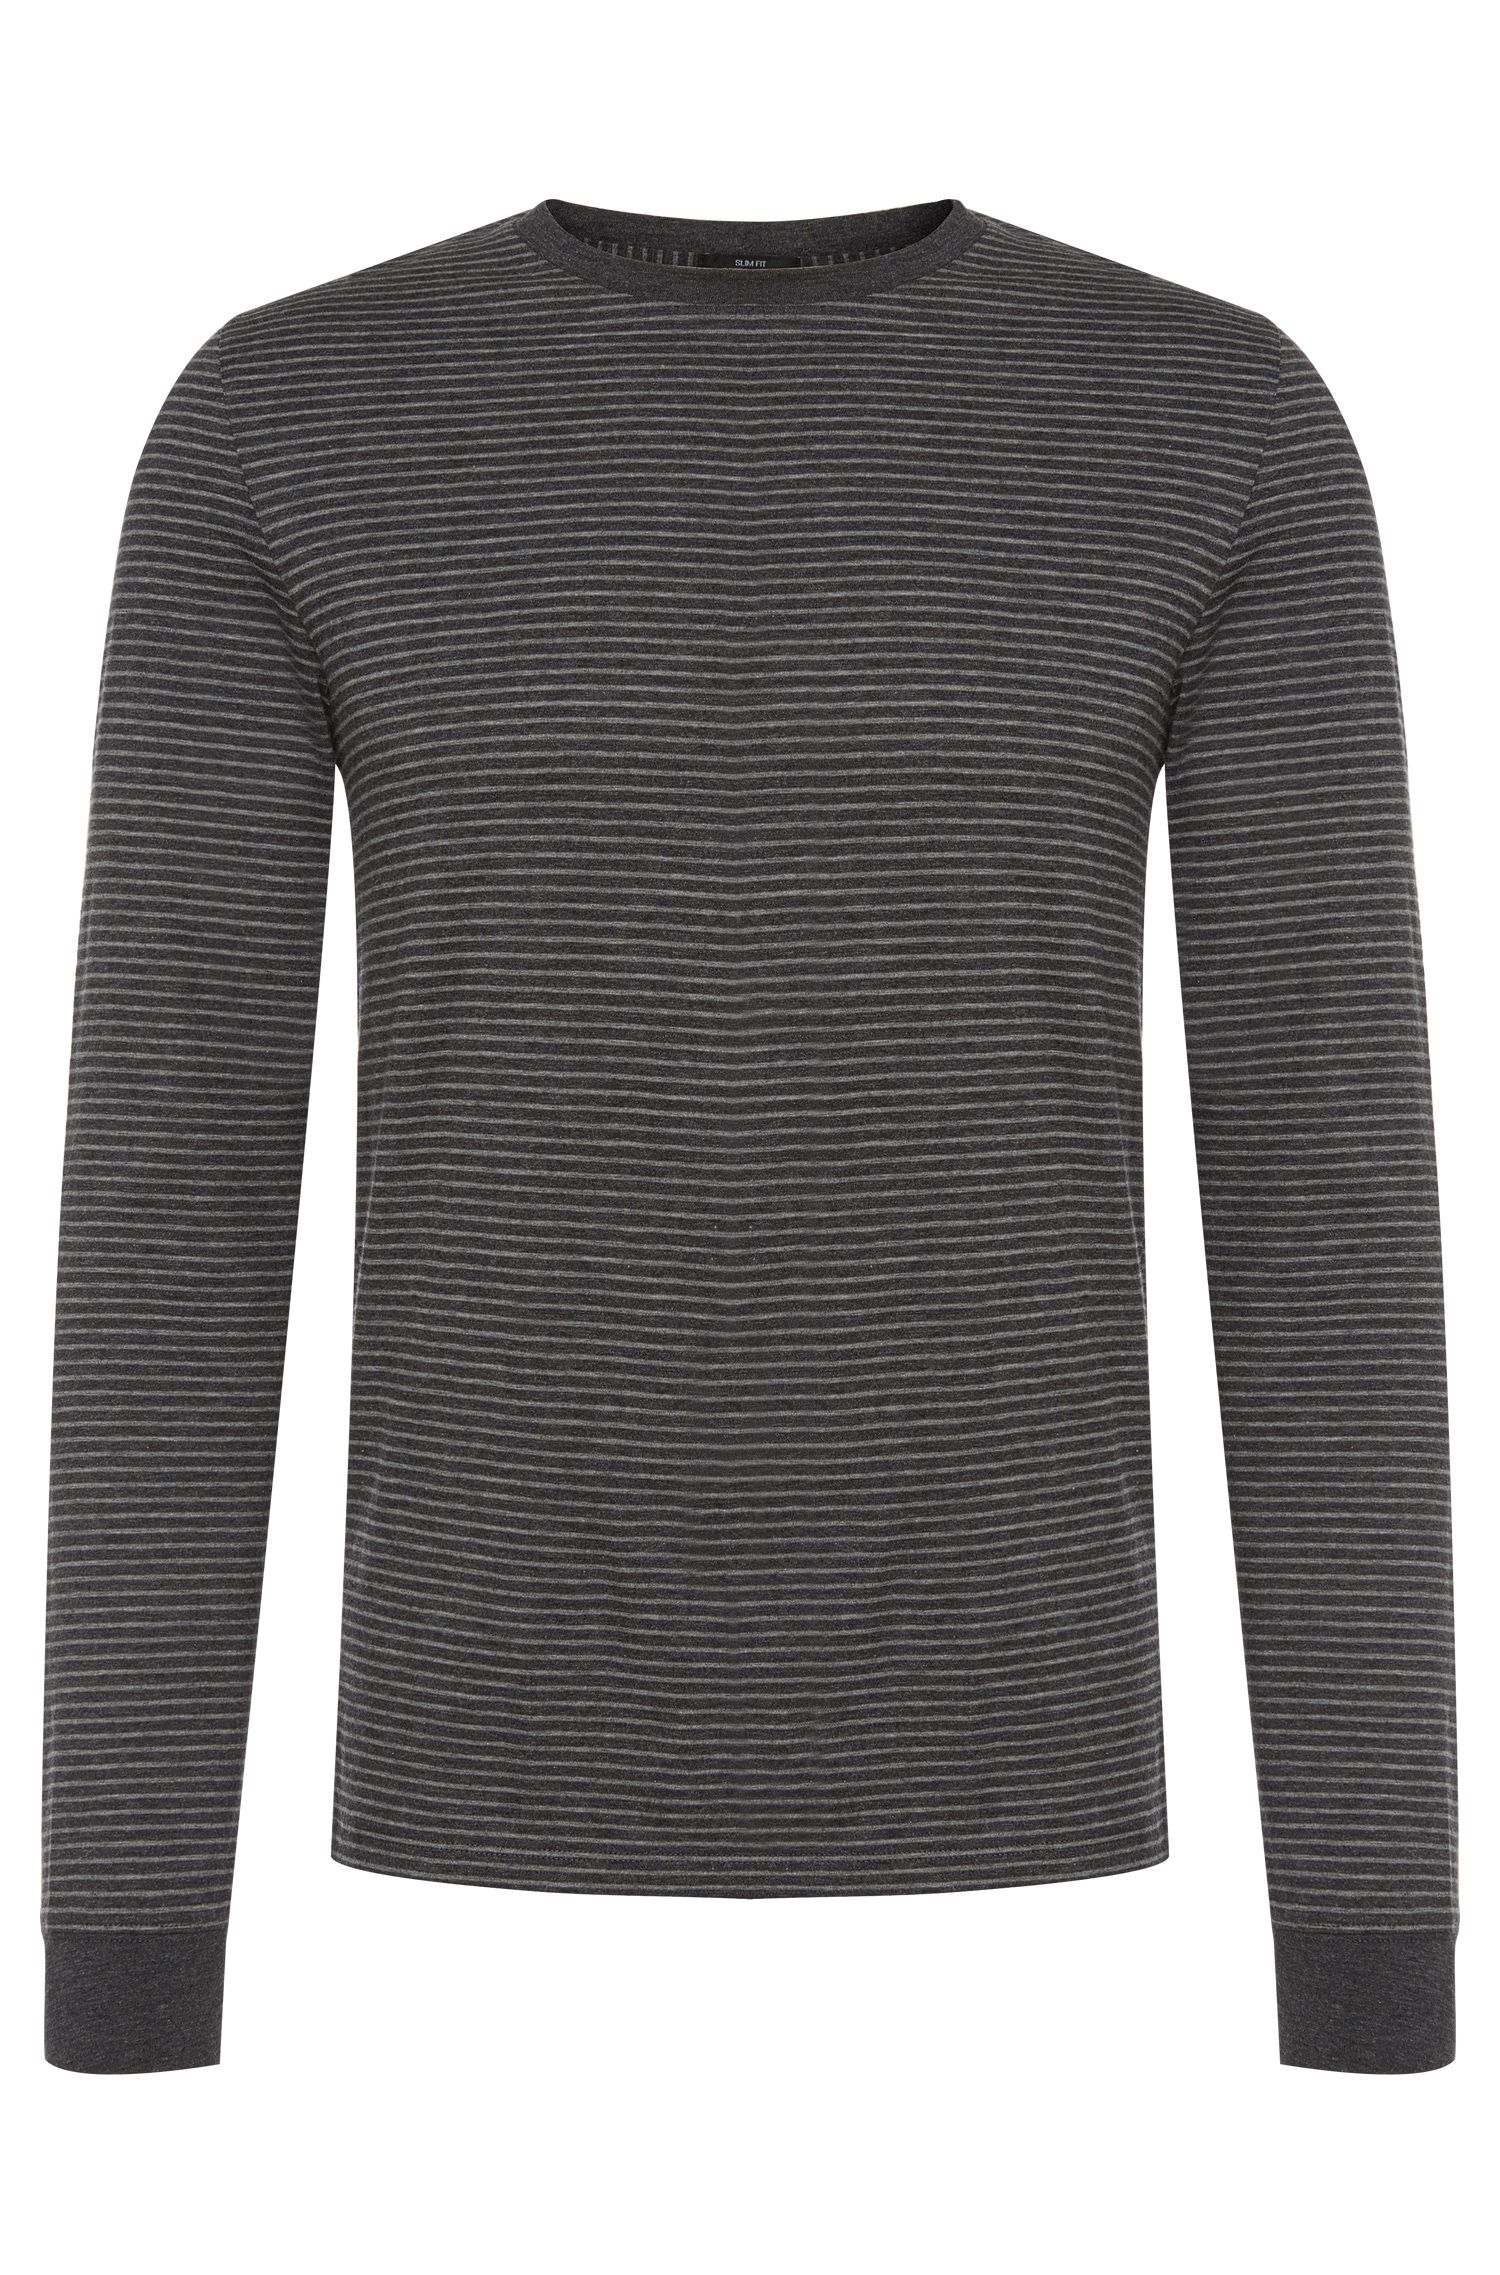 Striped slim-fit long-sleeved shirt in cotton blend: 'Tenison 04'